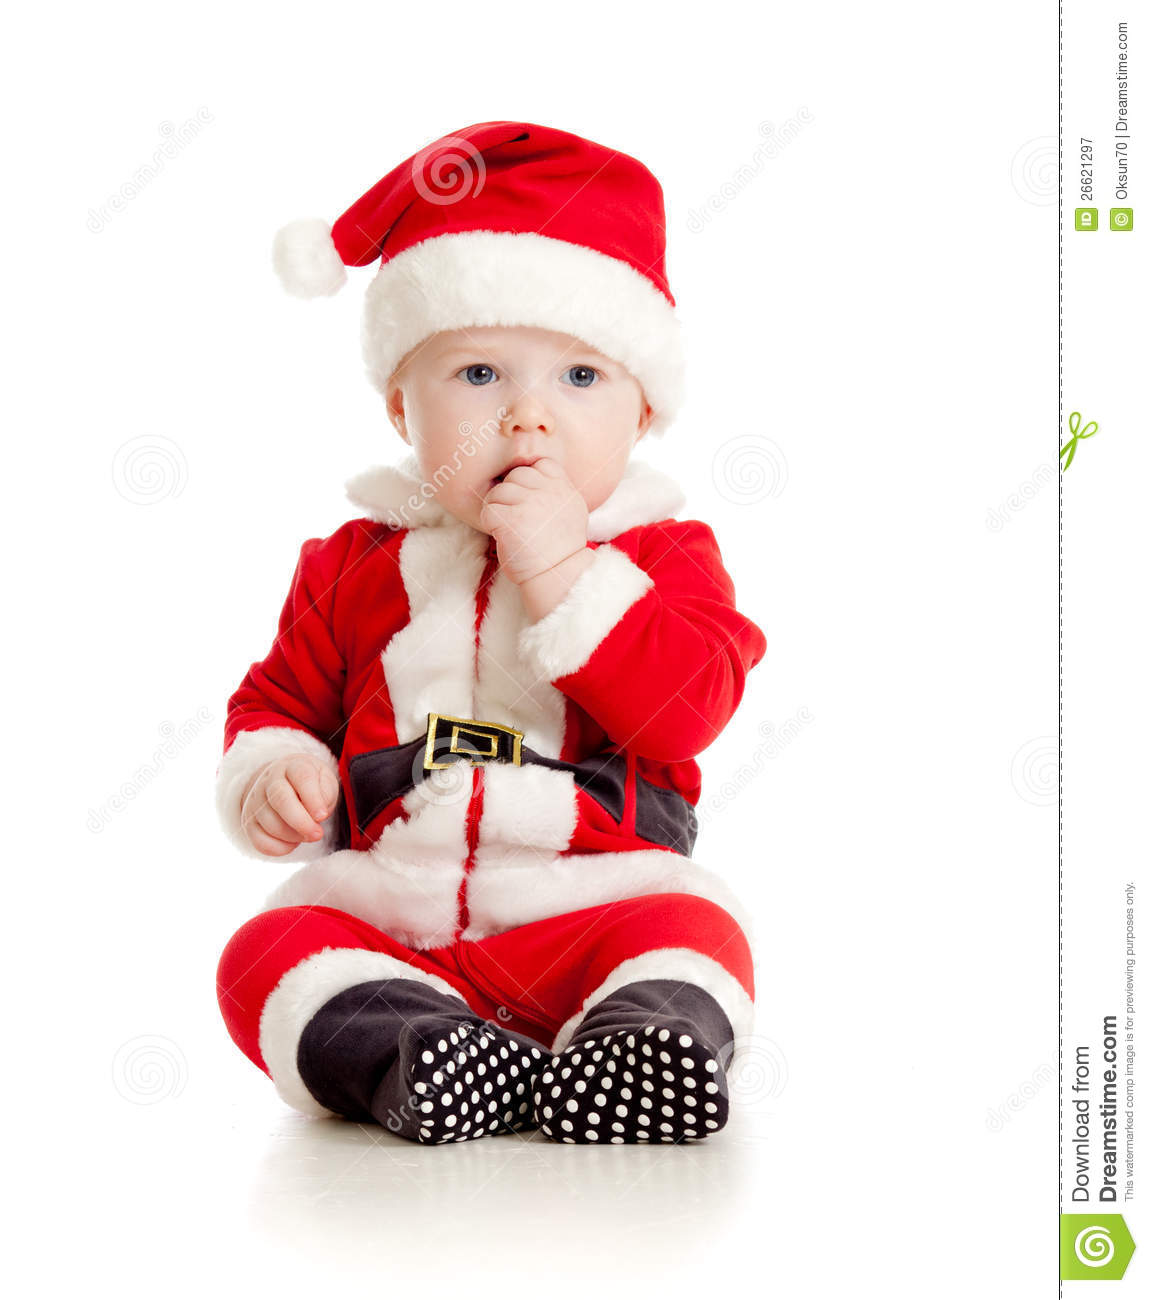 Christmas Baby Boy In Santa Claus Clothes Stock Image  Image: 26621297